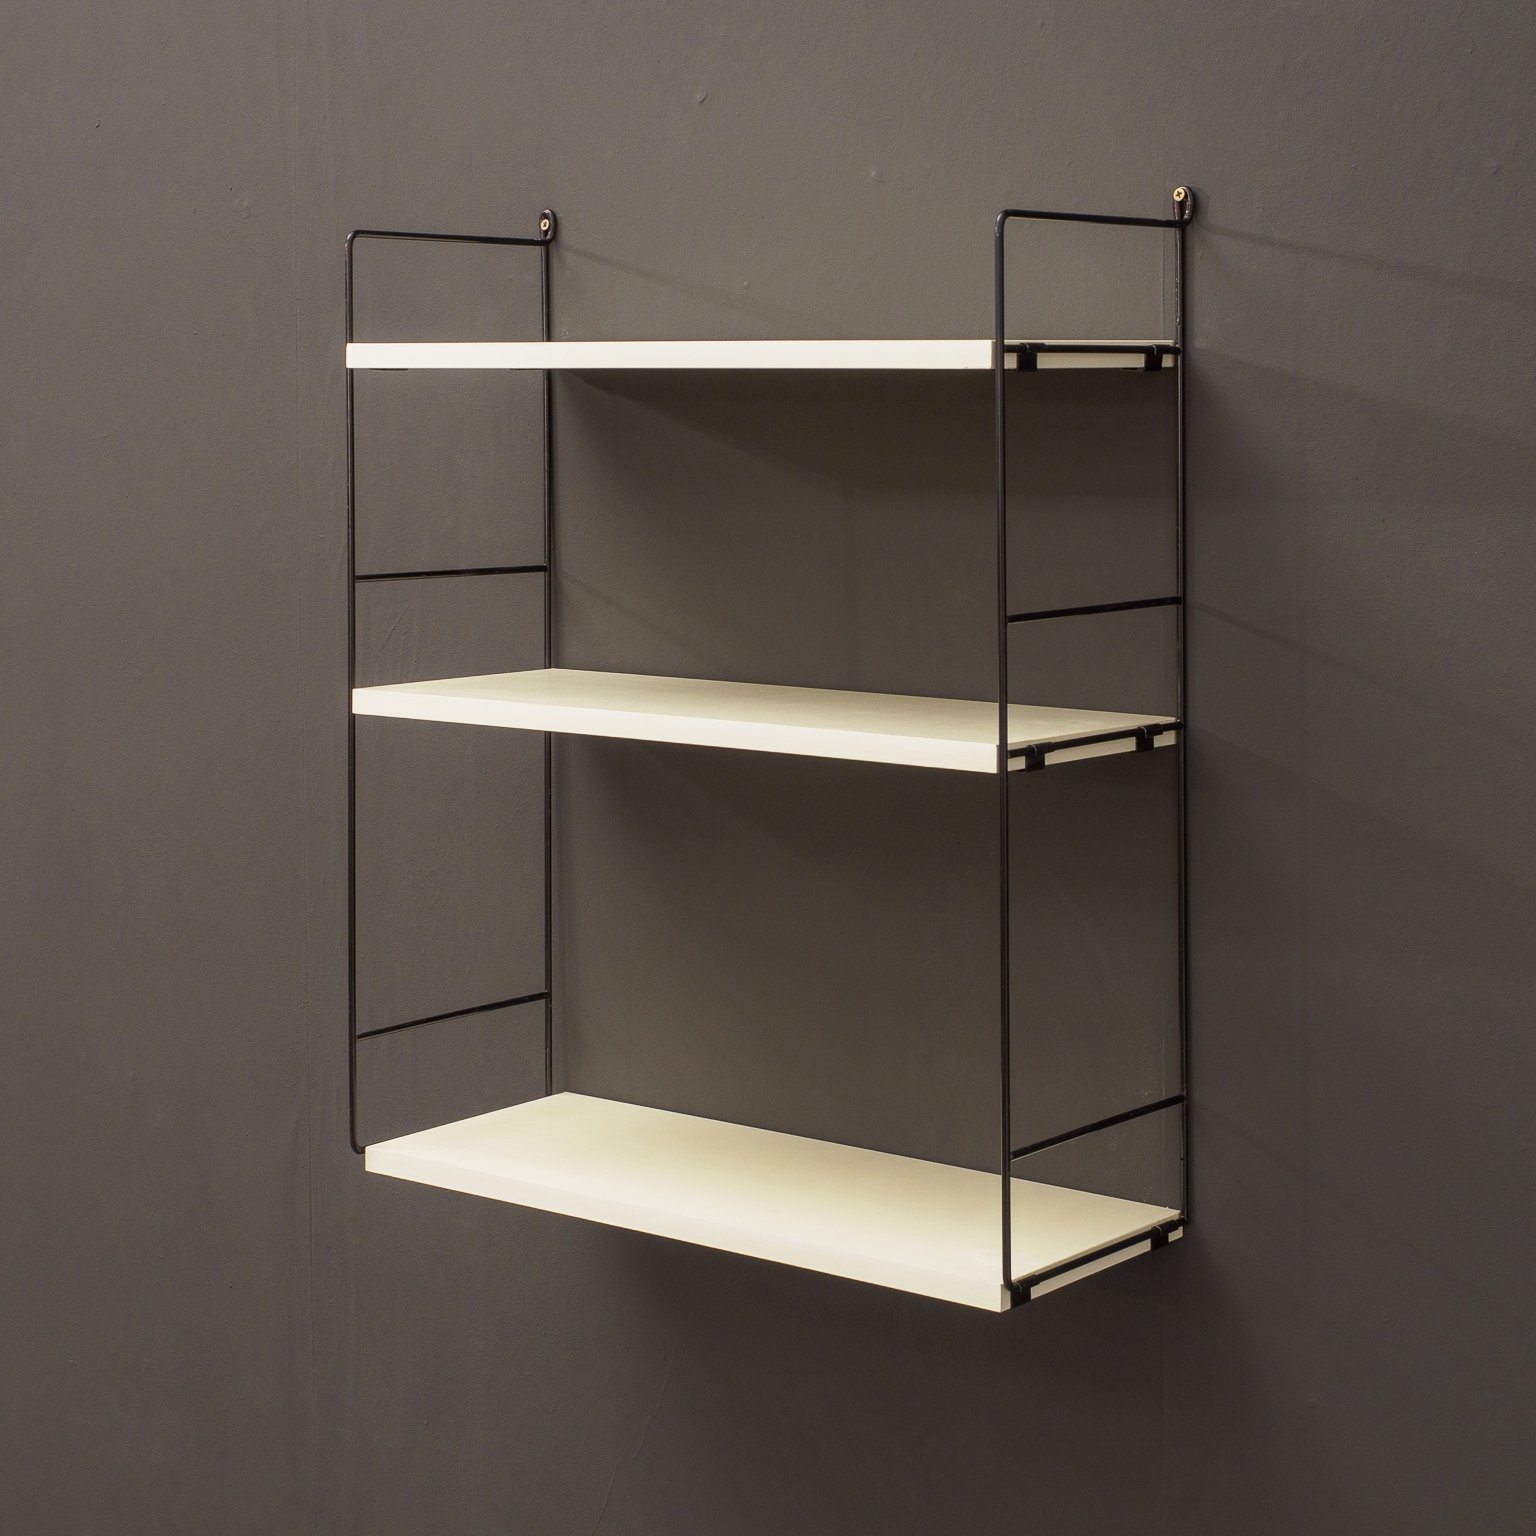 Midcentury Whb Wall Shelf With Metal Ladders Germany 1960s